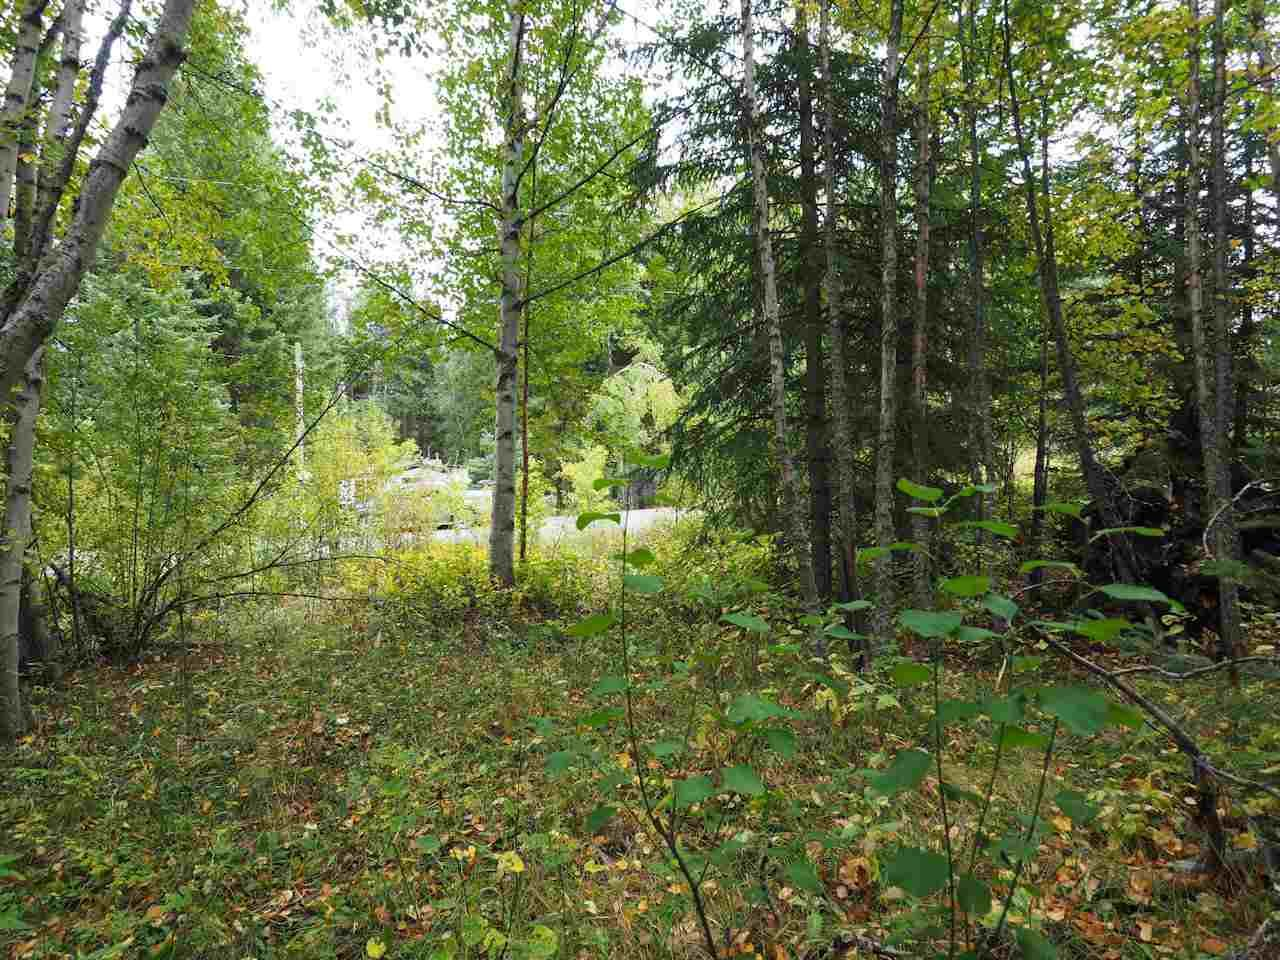 Main Photo: LOT 3 MALM Drive: Horse Lake Land for sale (100 Mile House (Zone 10))  : MLS®# R2495079